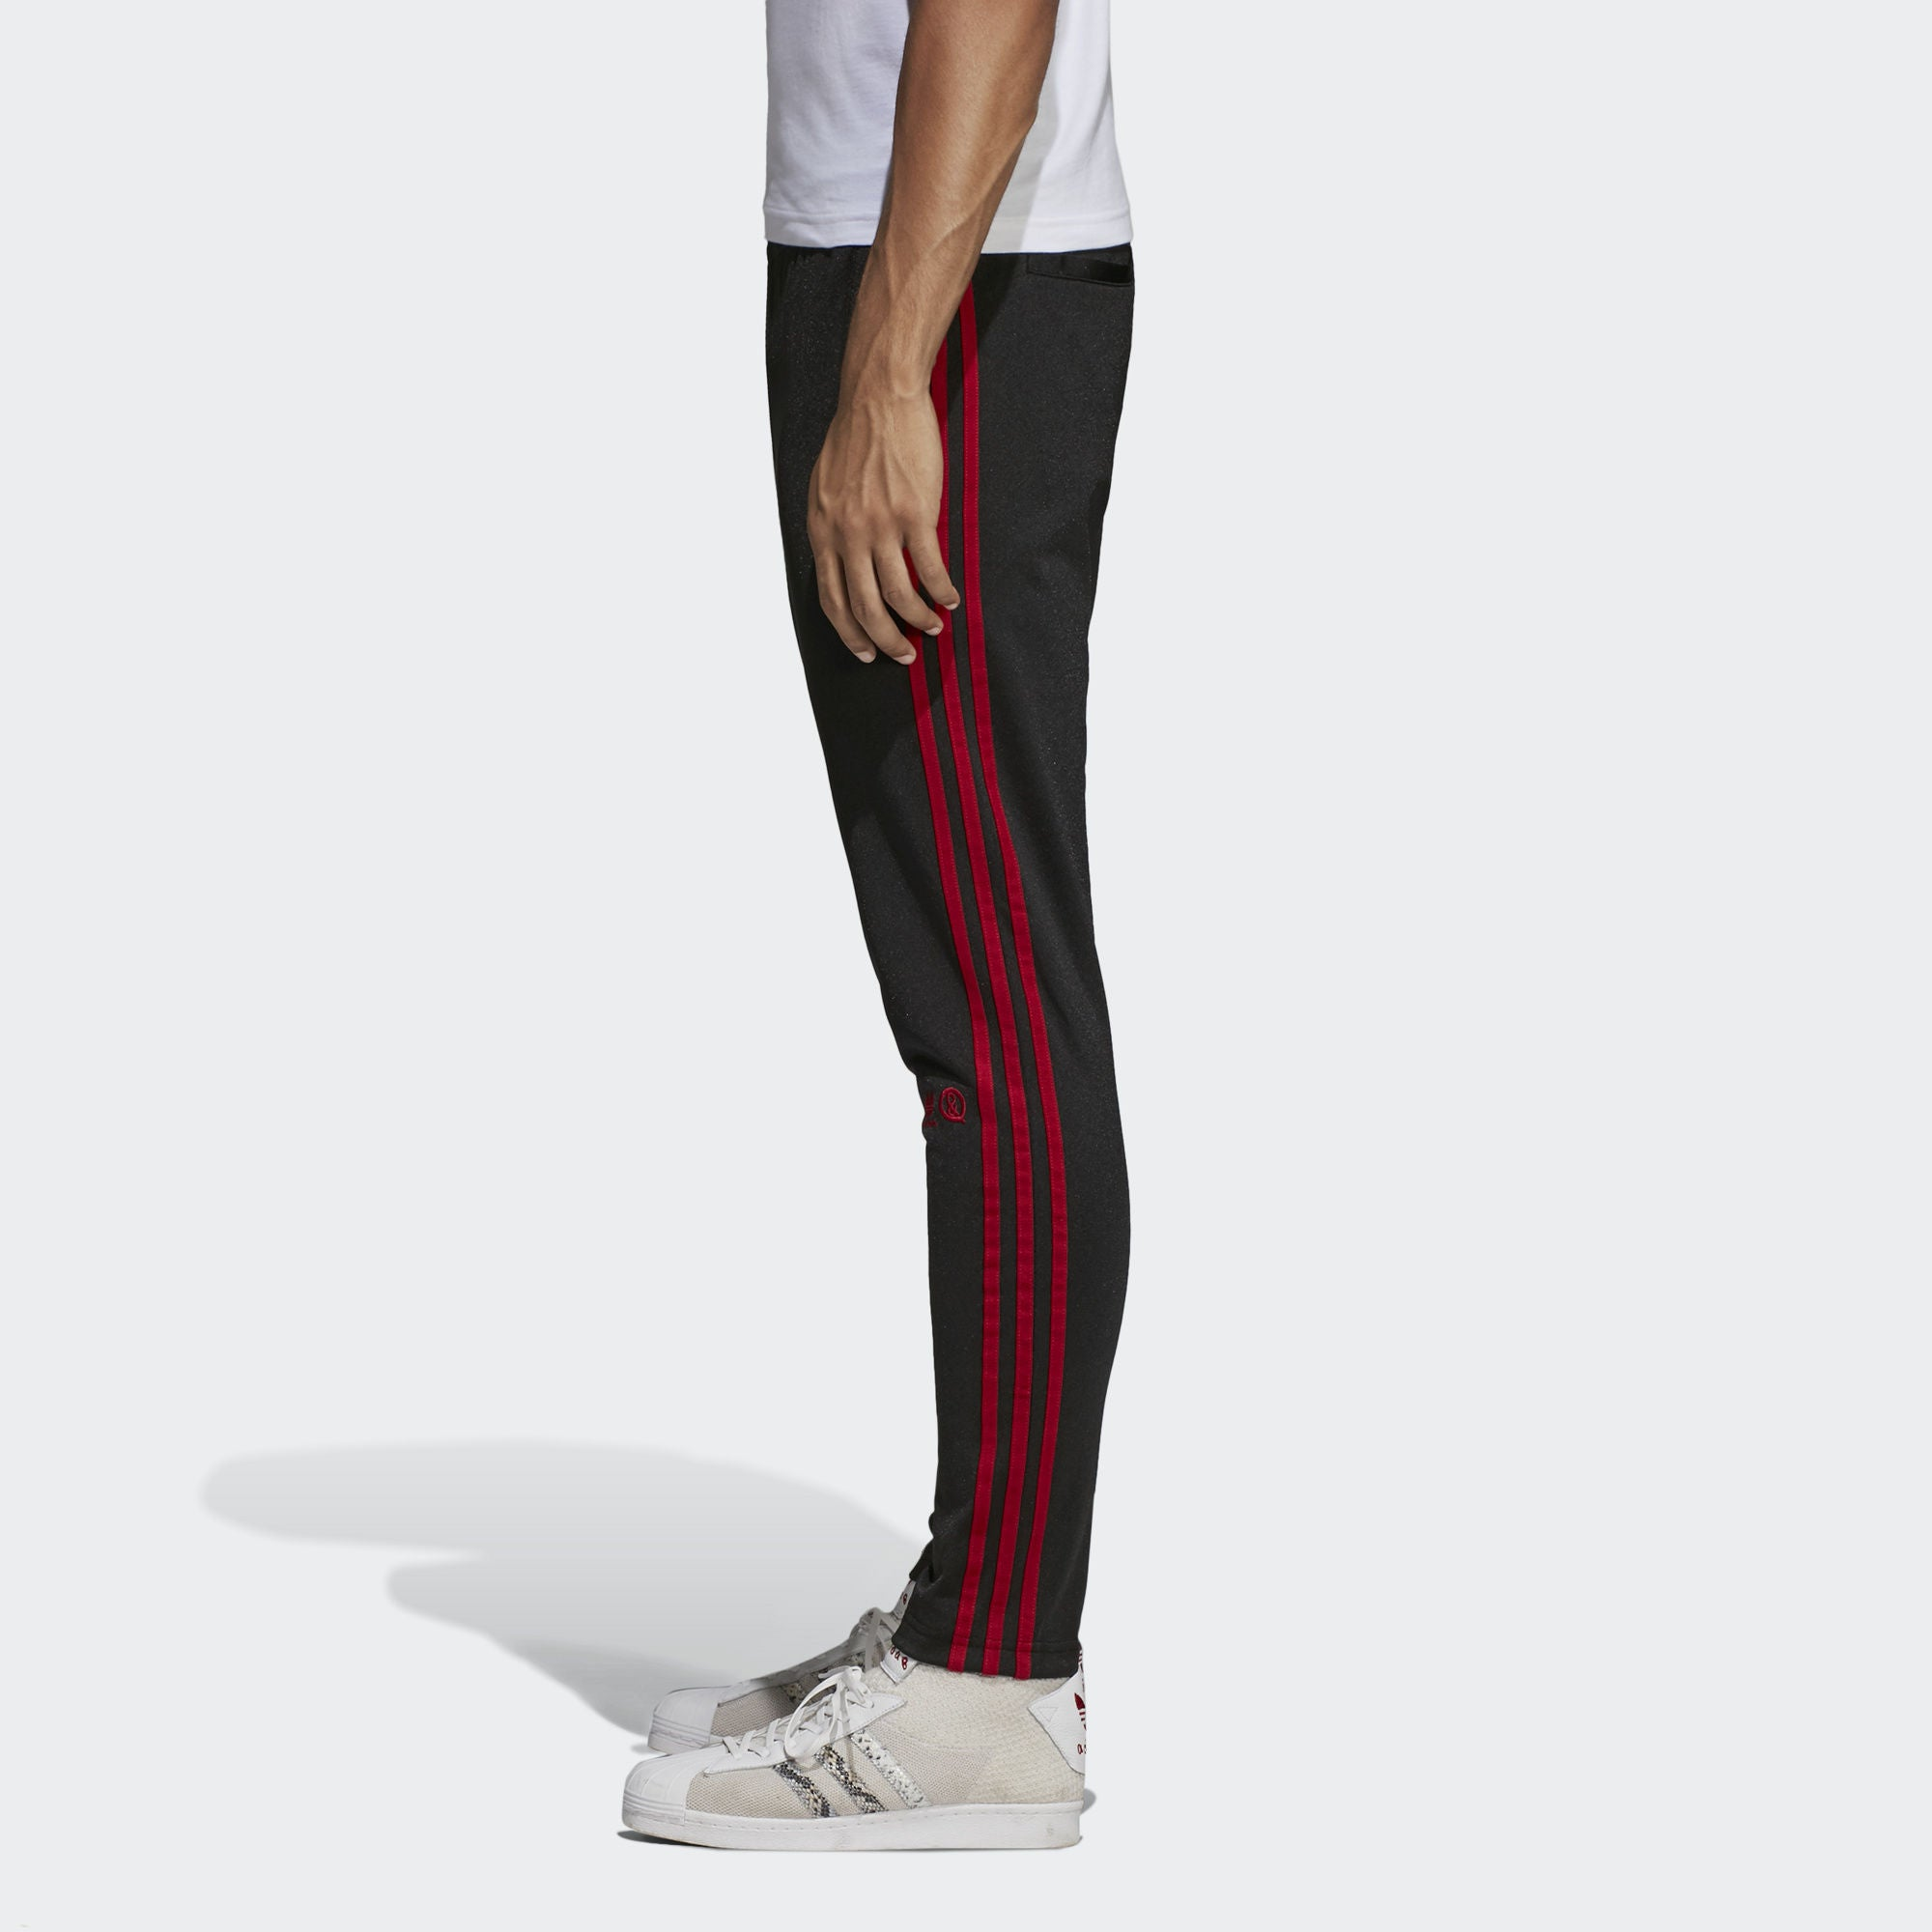 UA & SONS TRACK PANTS - BLACK